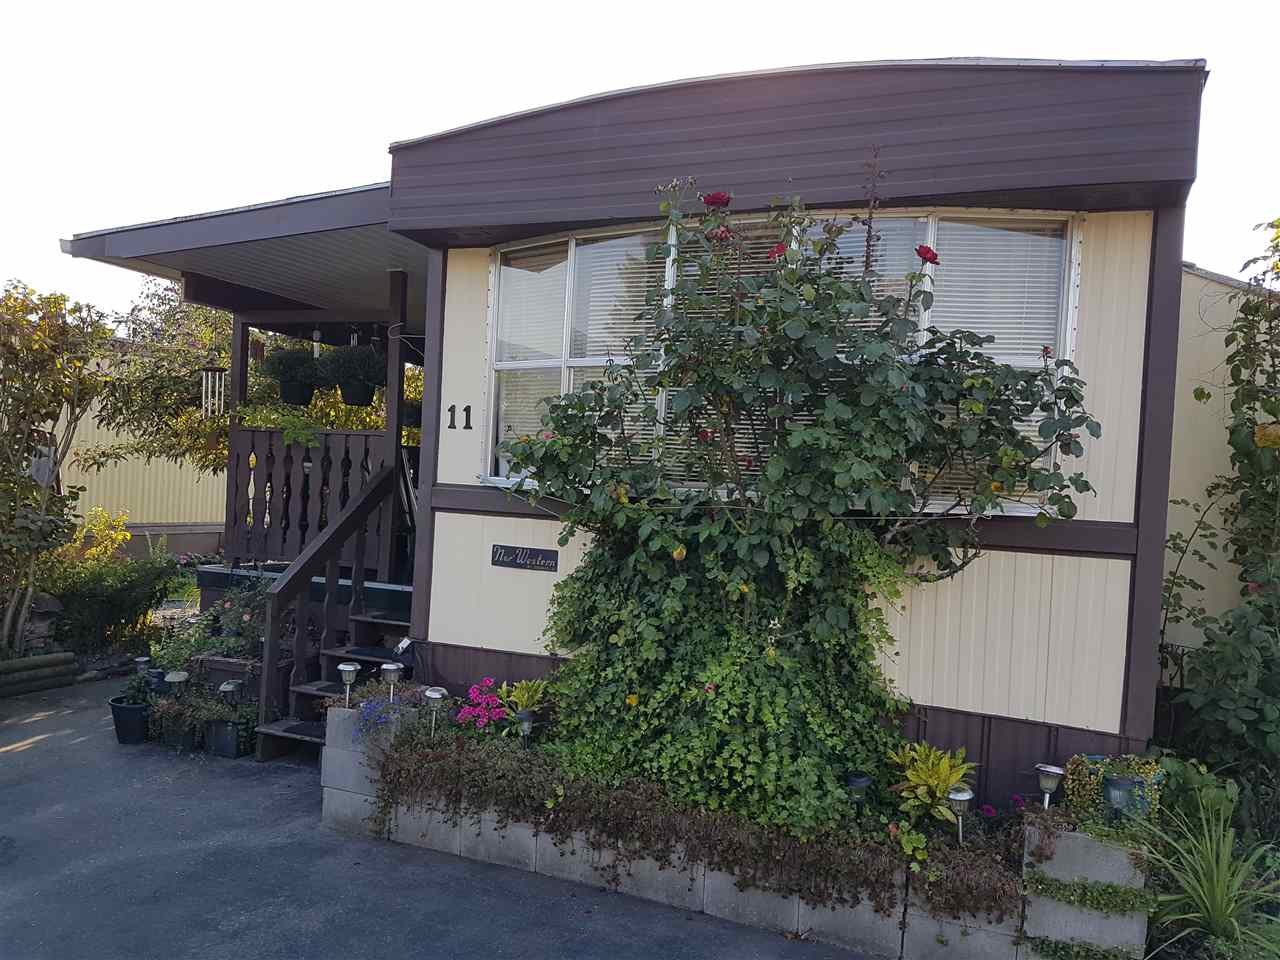 Central Sardis location, comfortable and affordable starter home or retirement haven. 2-bedroom mobile home in a family-friendly park close to schools, transit, shopping, banking, restaurants, Garrison Village, and Cheam Leisure Centre. Relax on the sundeck and and garden, with room to expand the yard in the back. New fridge & stove (July 2018), newer roof, furnace and roof done 3 years ago. 3-year-old leather couch and armchair included. Cats or one small dog allowed. Park approval required with references plus criminal record check.